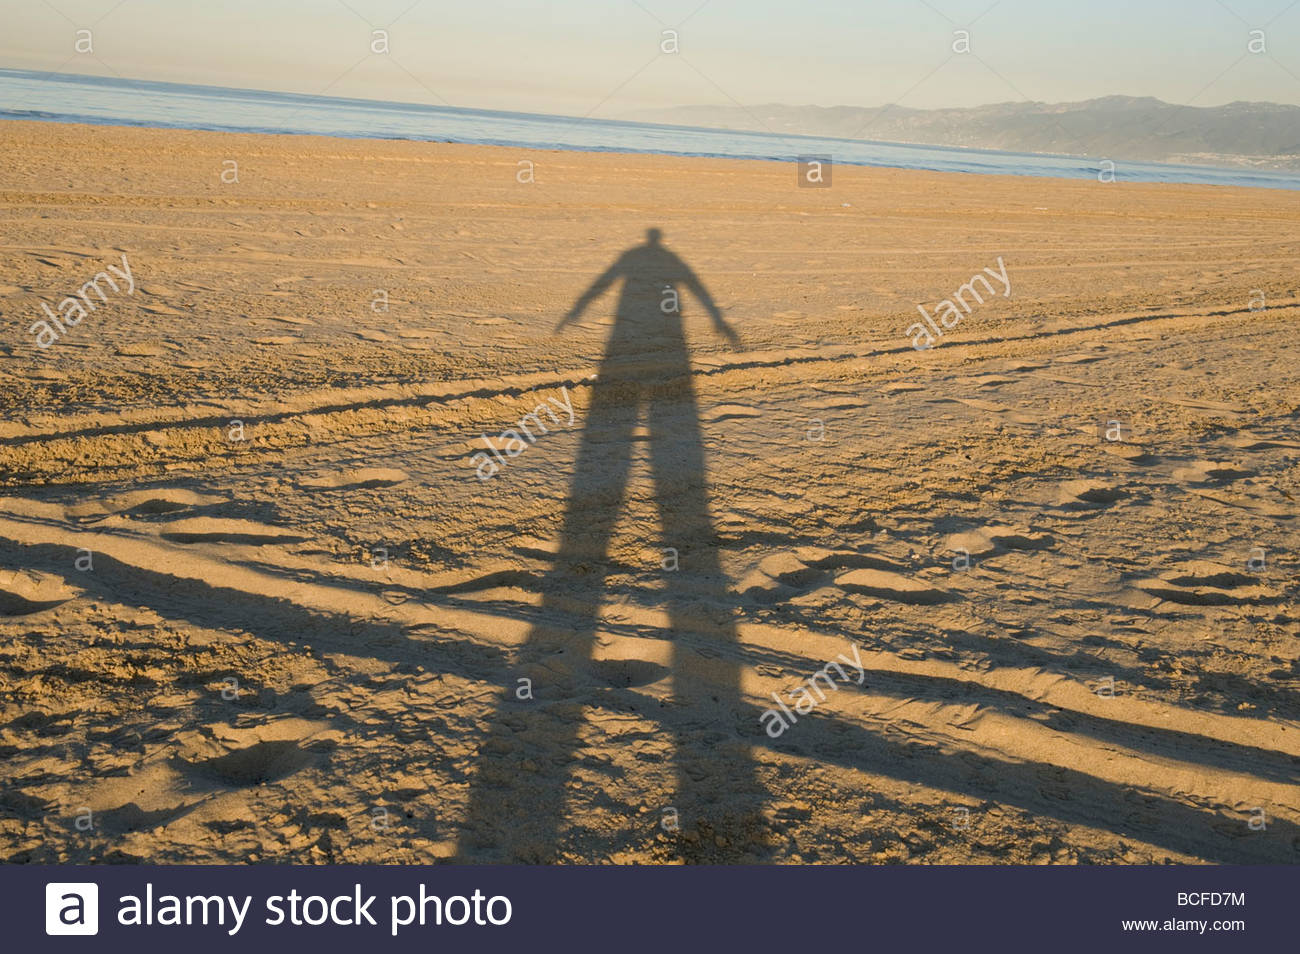 A man's shadow is elongated in Venice Beach, CA. - Stock Image